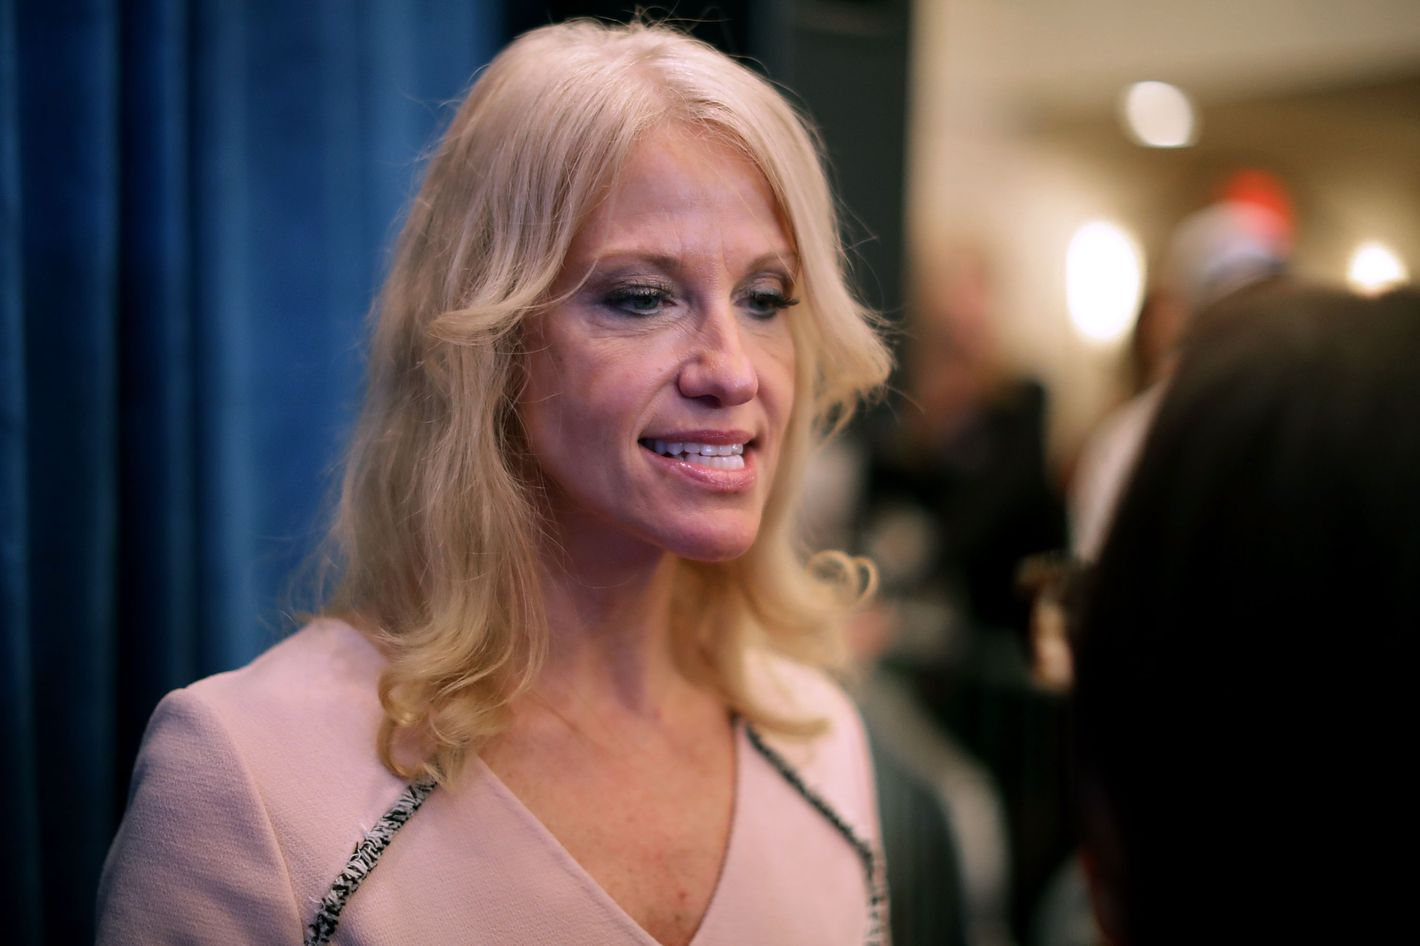 kellyanne conway scolds student for sexual assault question